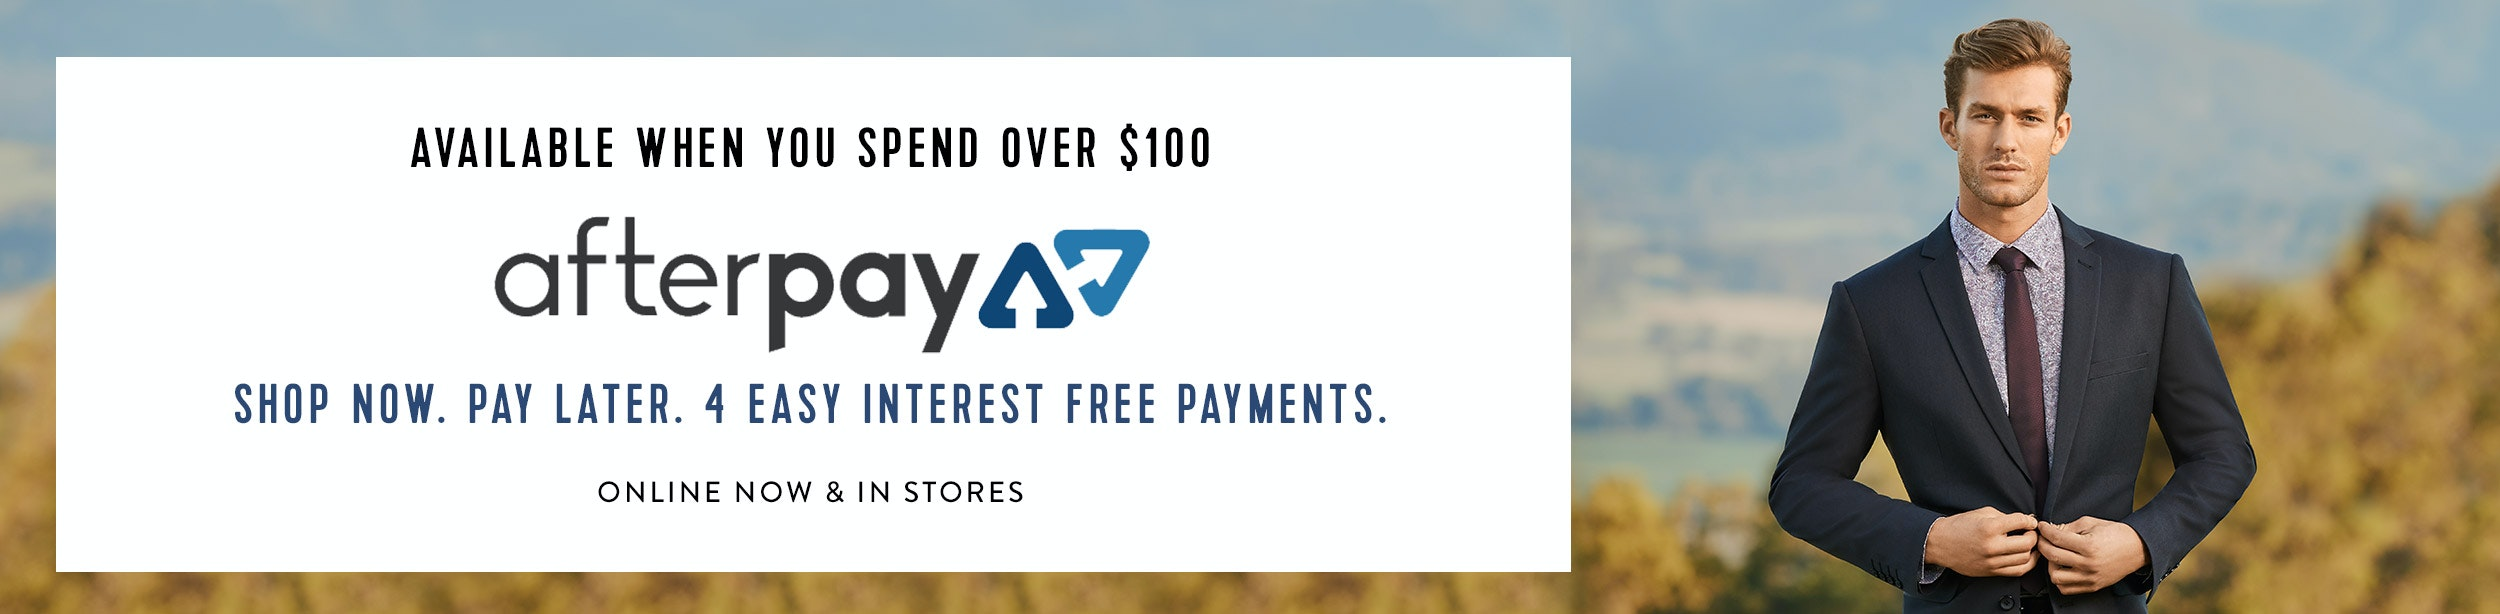 Shop now and pay later using Afterpay